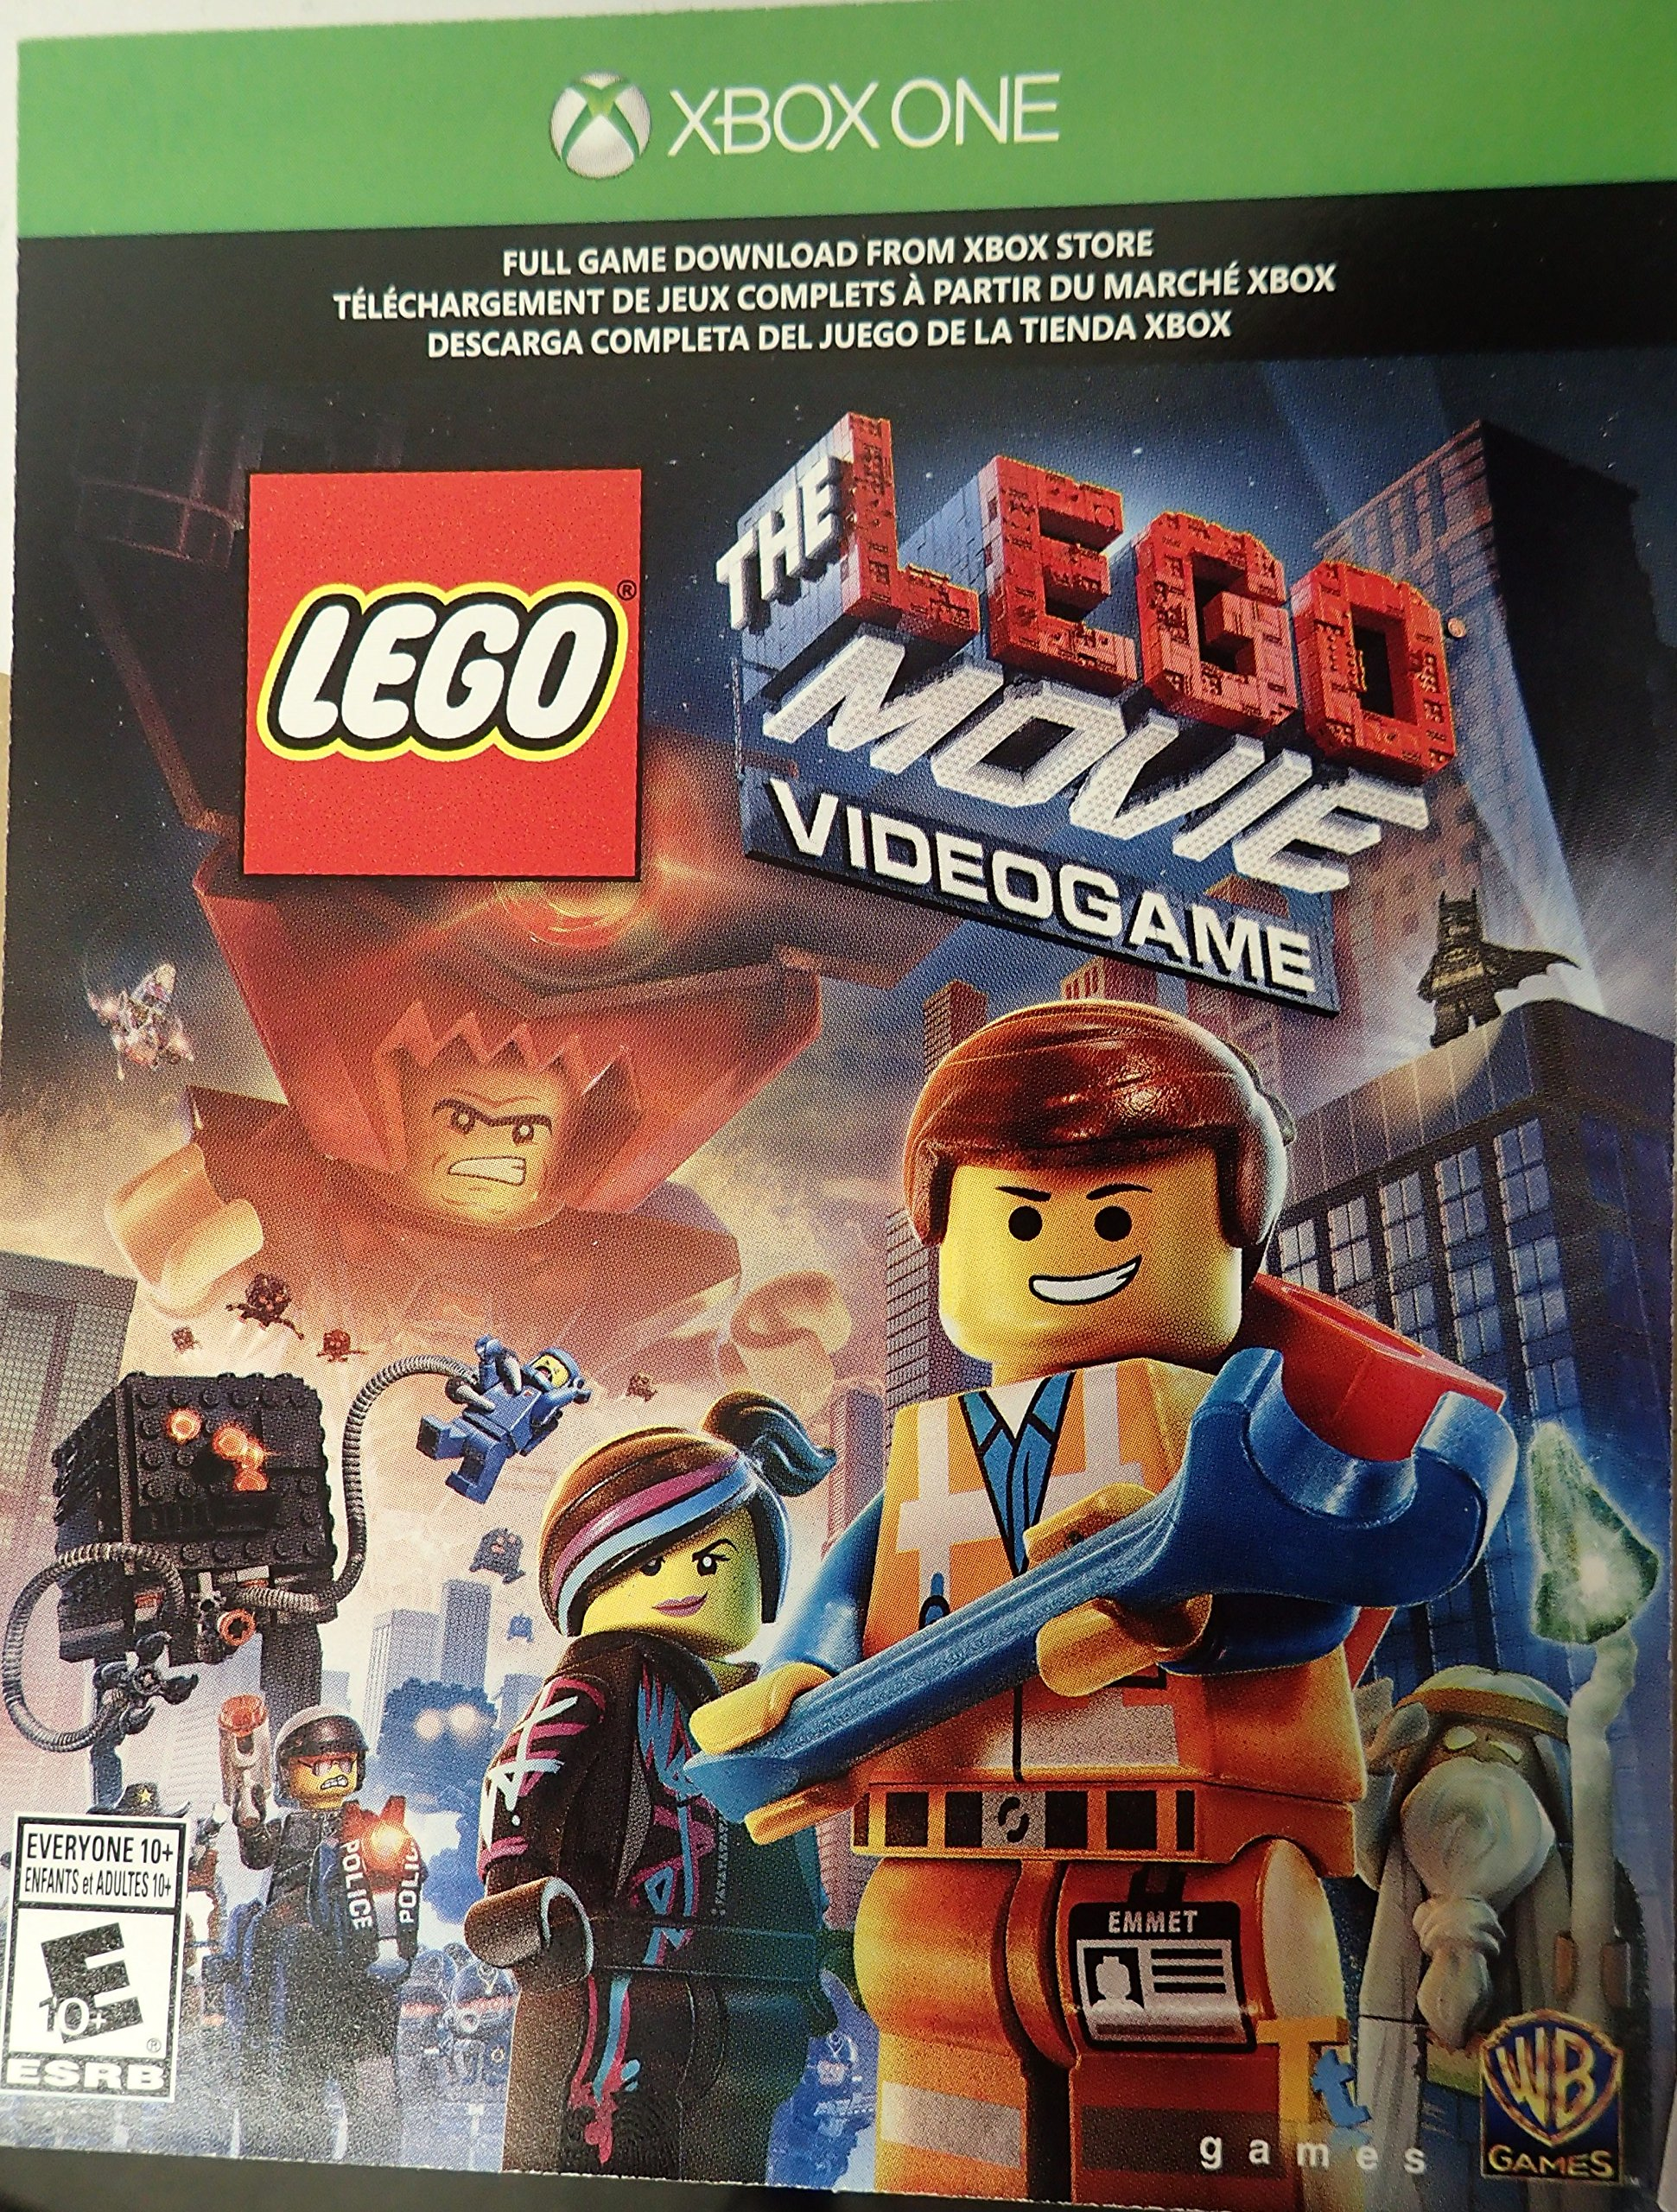 Amazon.com: The Lego Movie Videogame - Xbox One Download ...